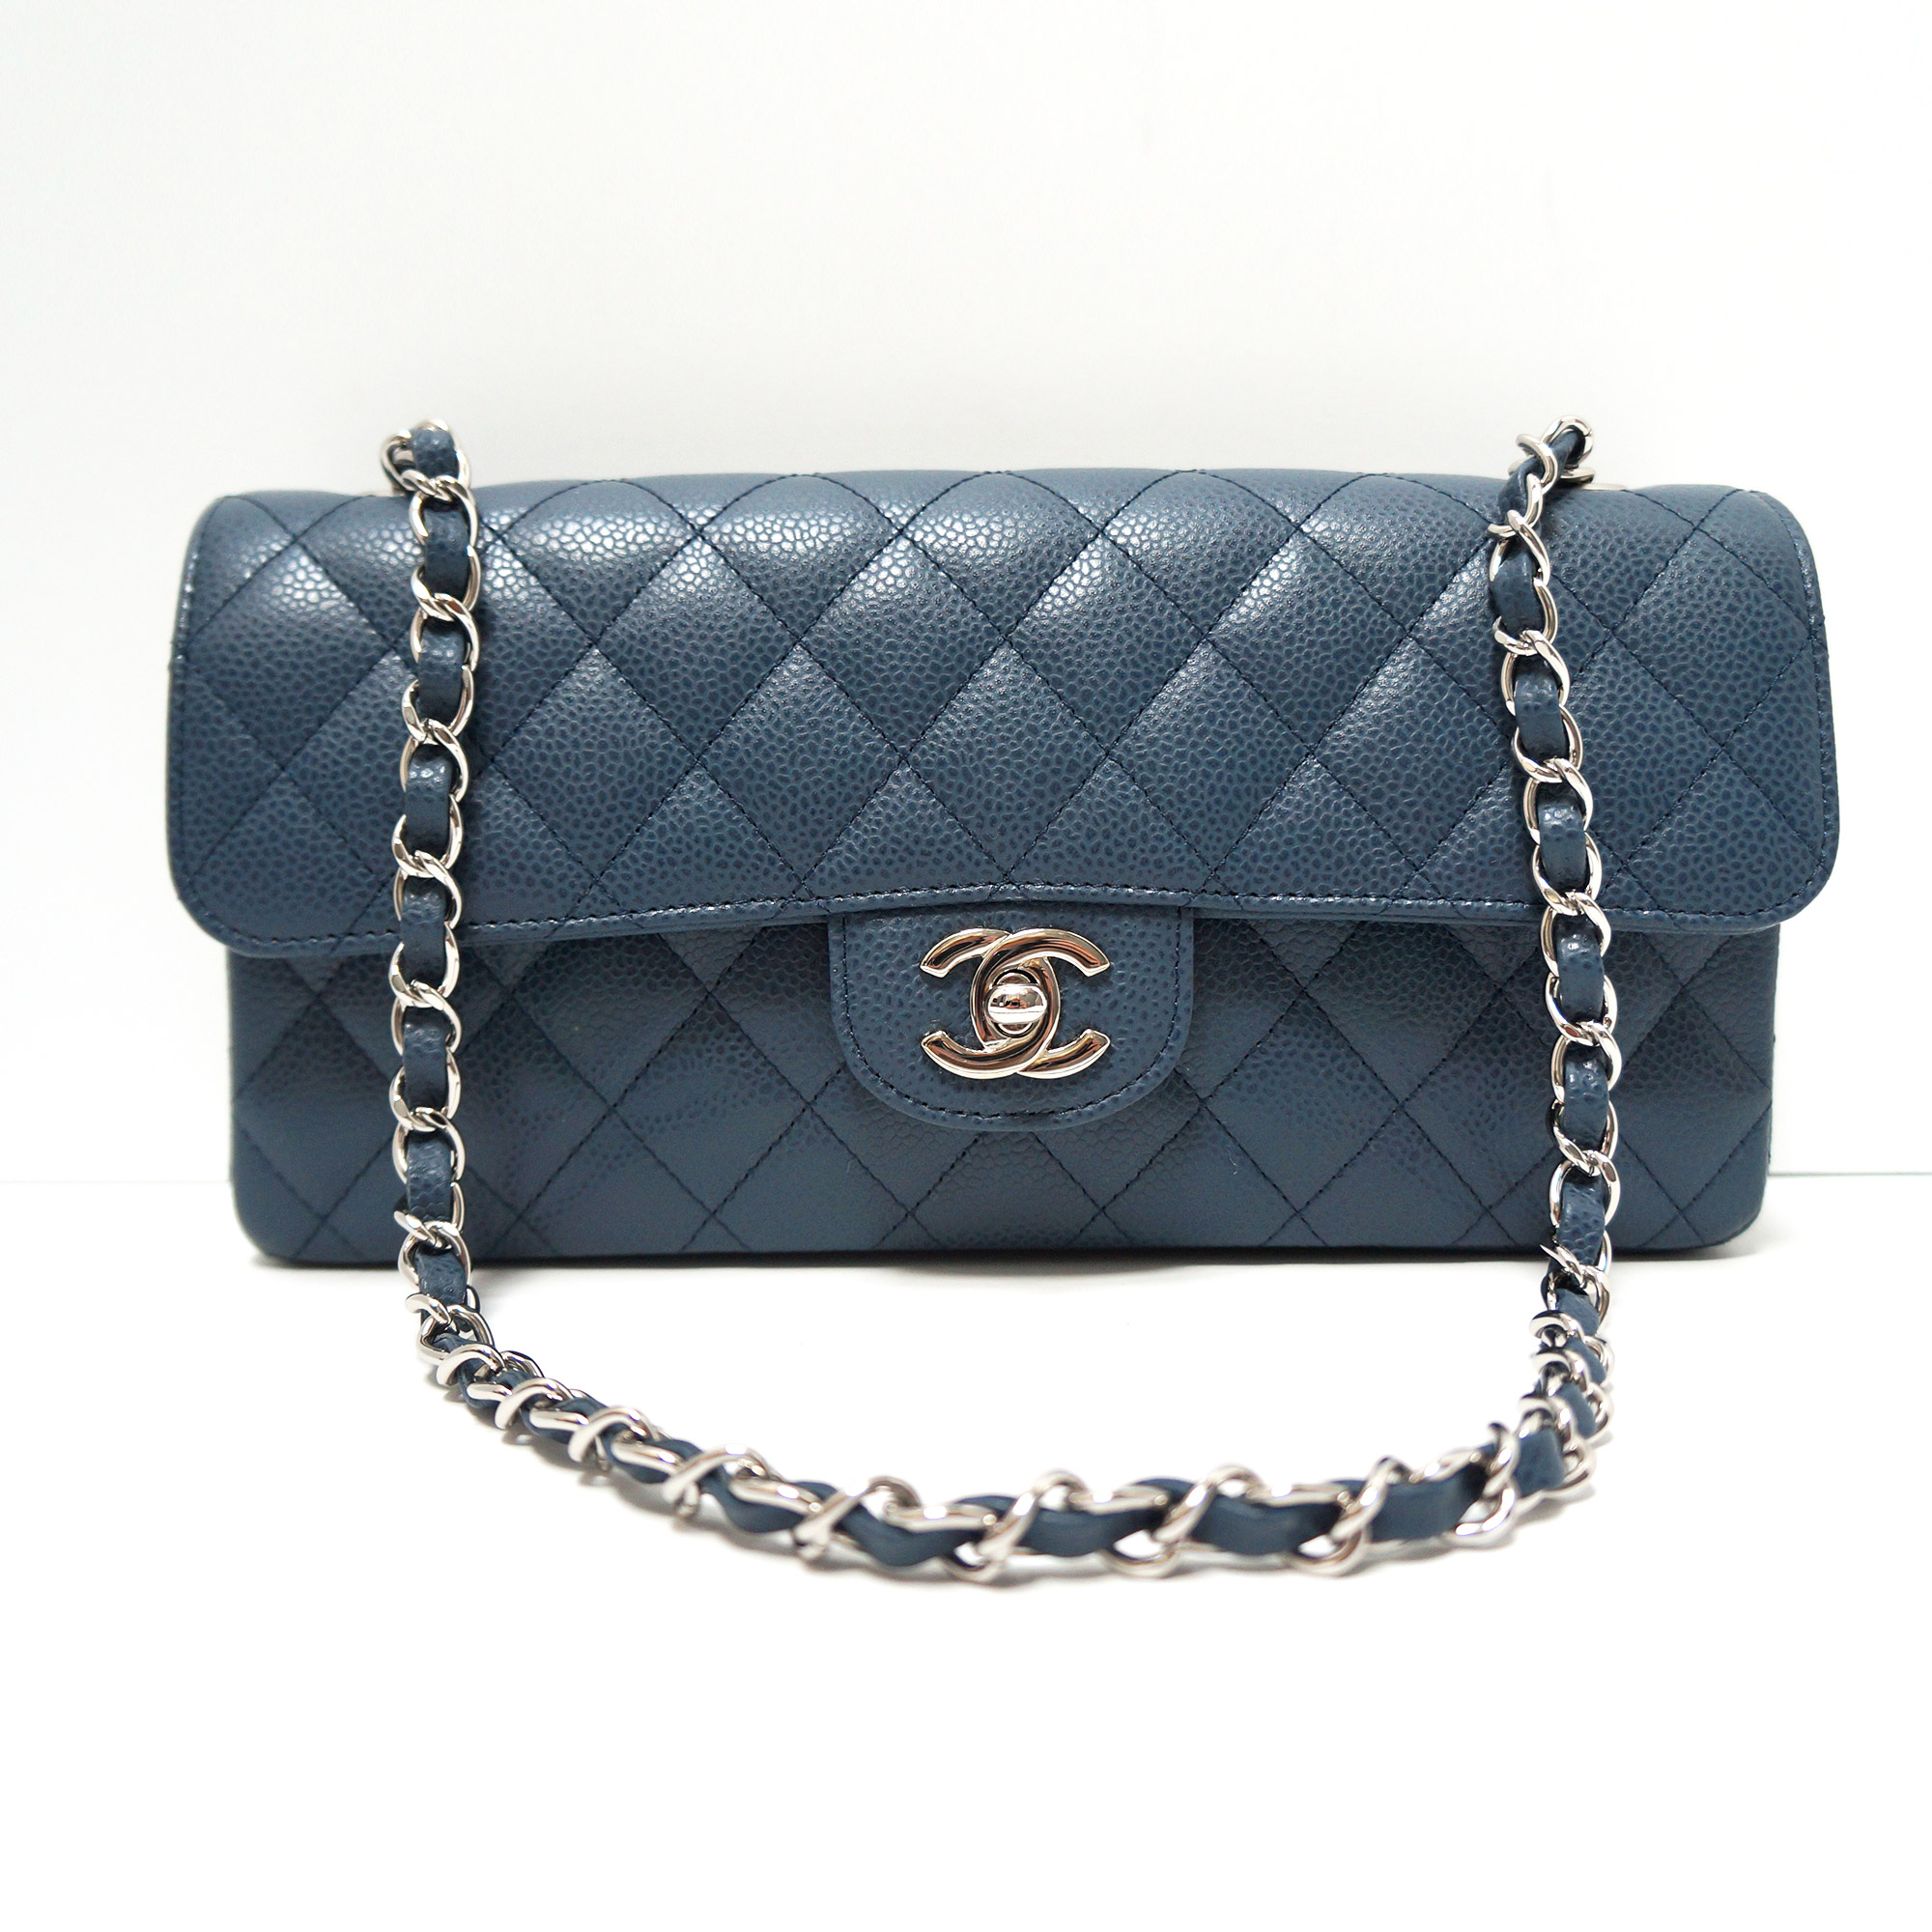 efda918d2e10 Chanel Small Flap Bag Caviar Leather | Stanford Center for ...